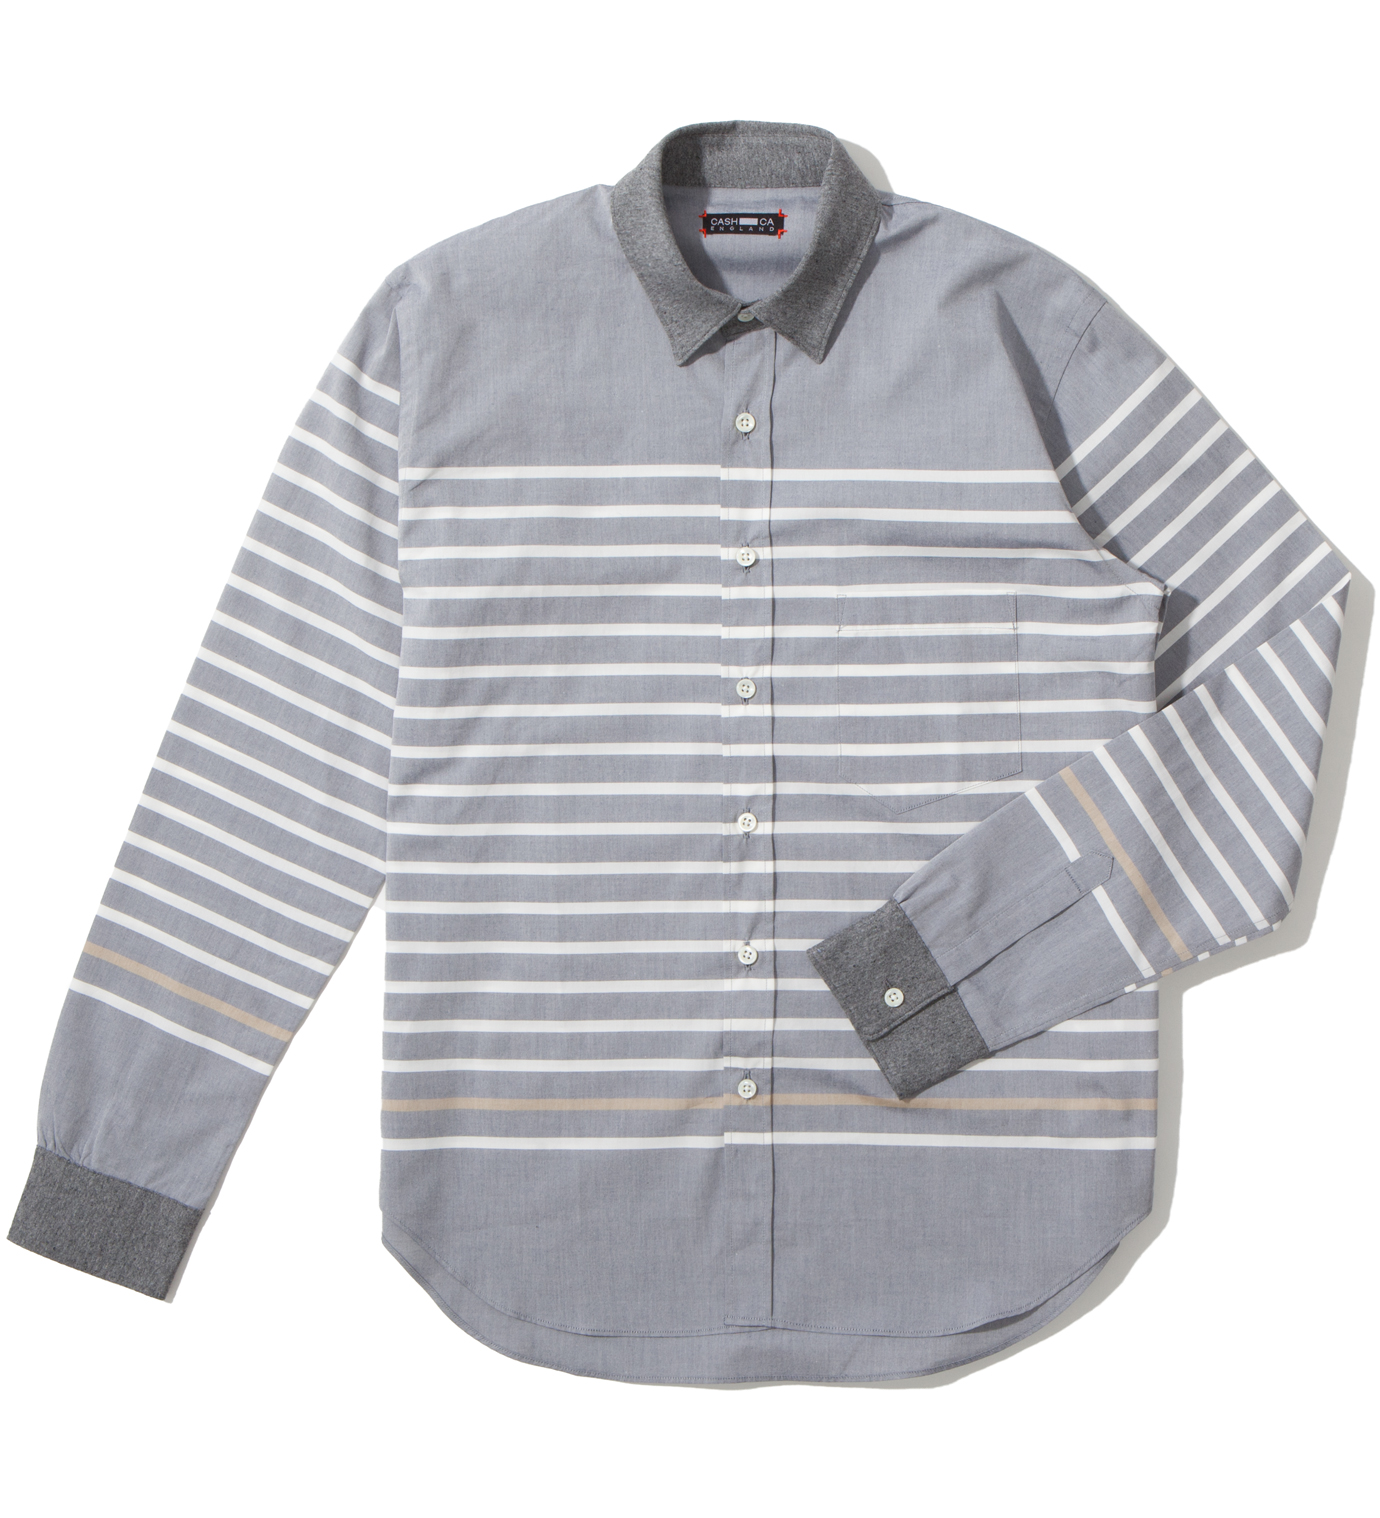 CASH CA Navy Matelot Shirt